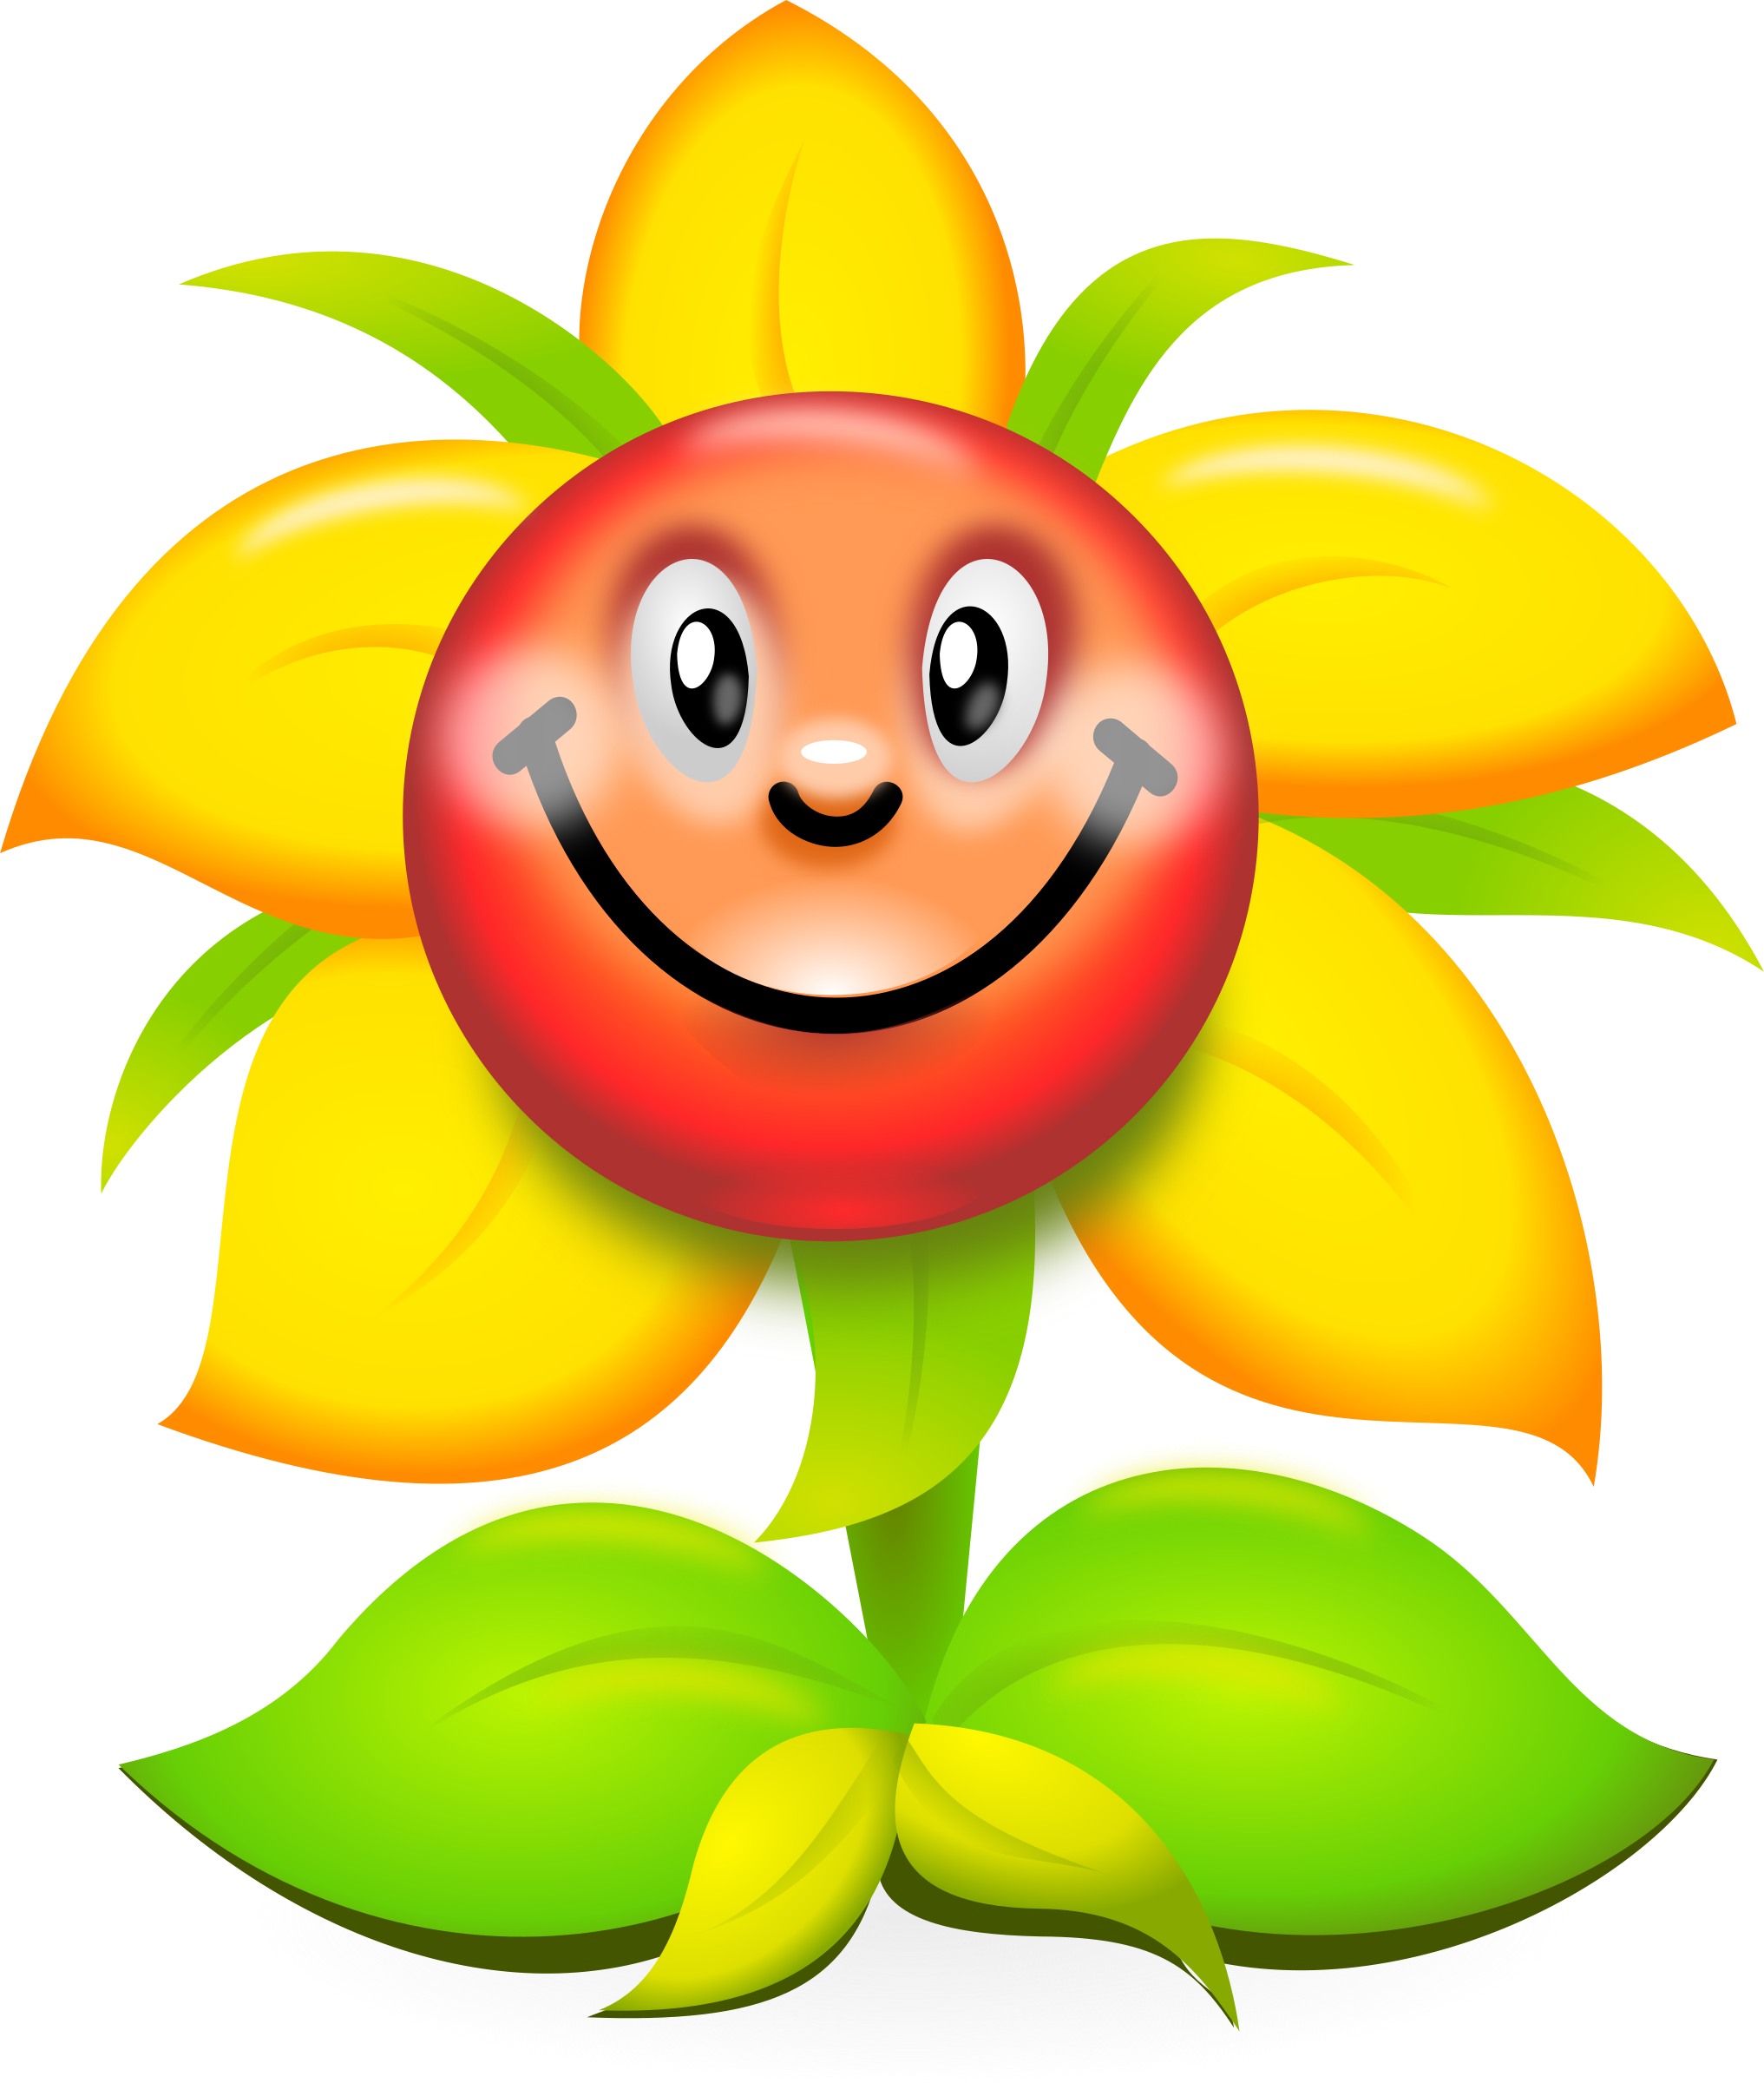 png royalty free Character clipart flower. Funny yellow superb production.